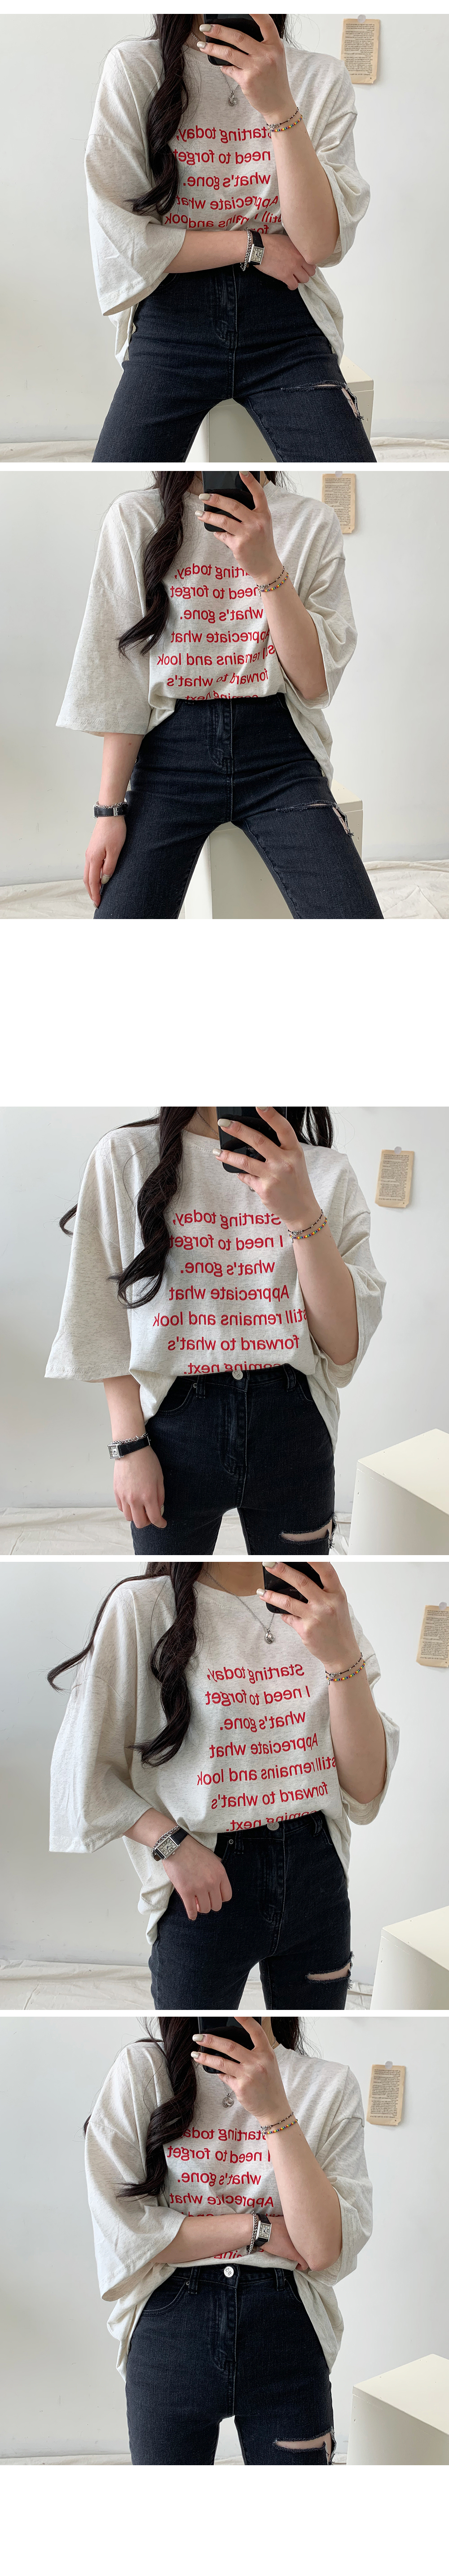 Today Lettering Short Sleeve Tee